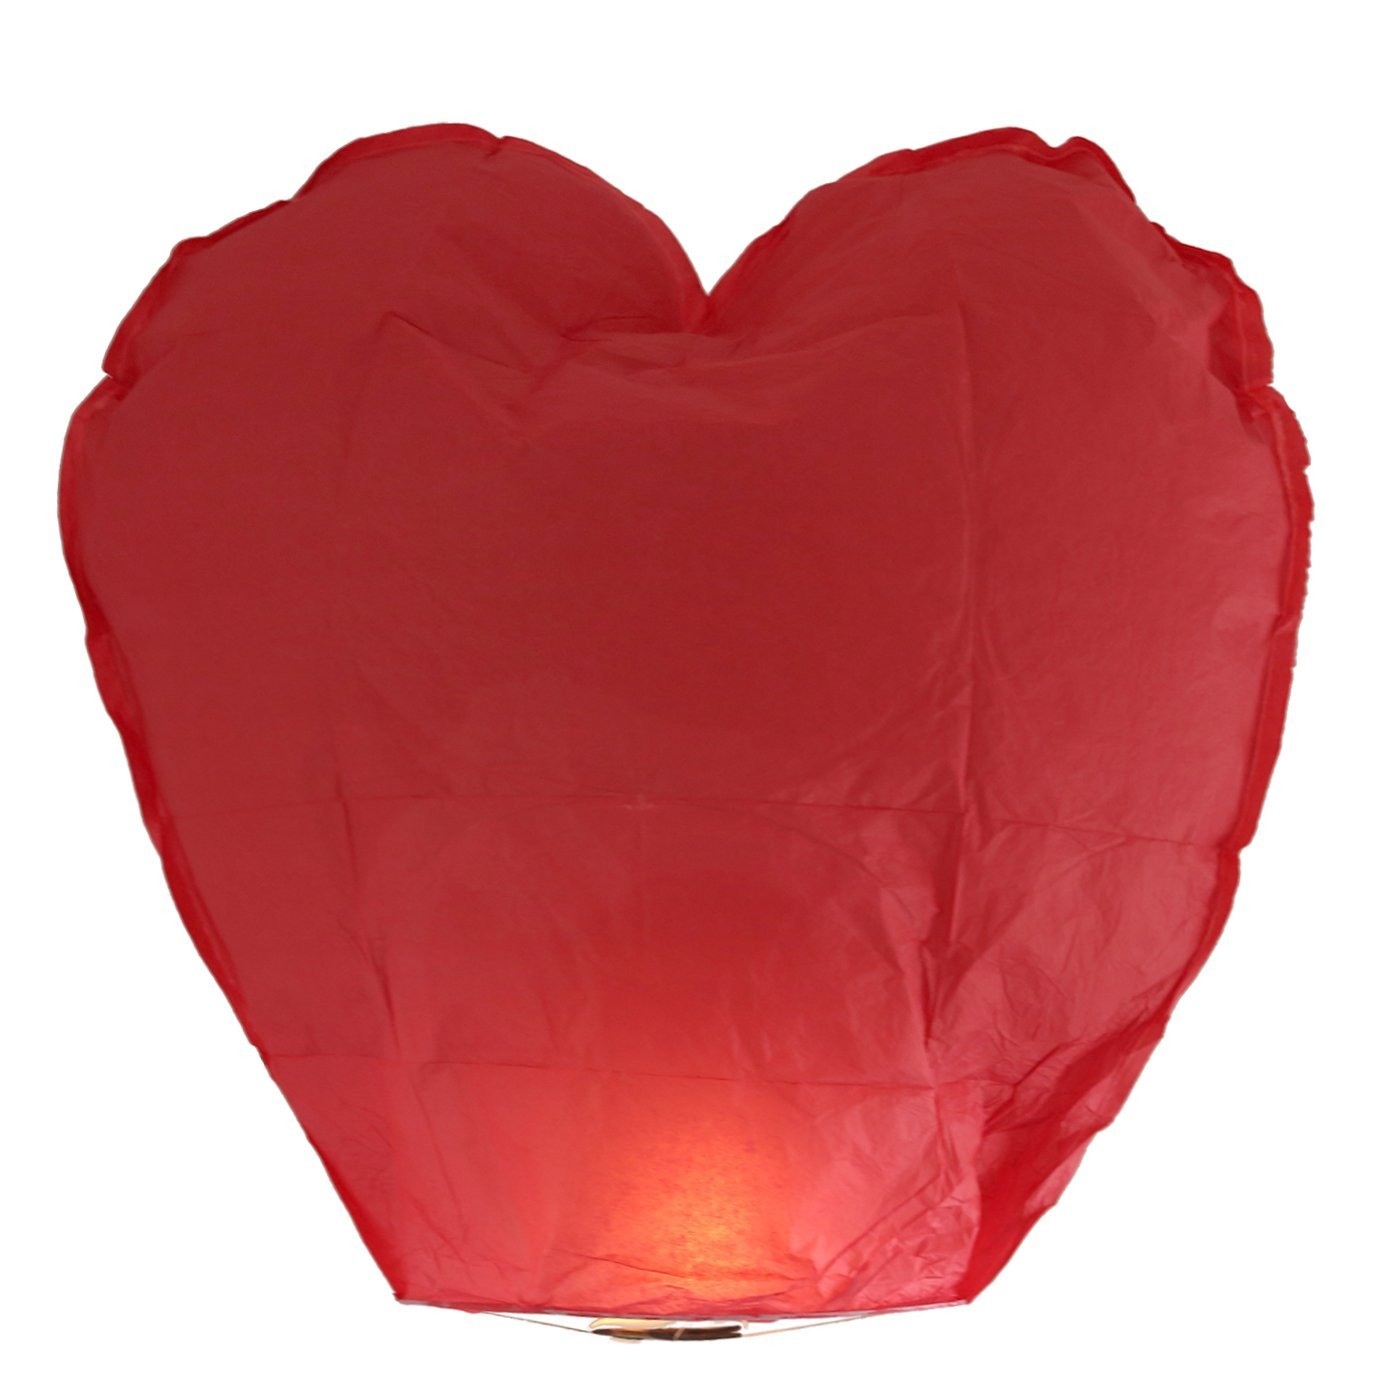 Sky Lanterns 10 Pack Chinese Lanterns Eco Friendly 100% Biodegradable Environmentally Friendly Ready to Use Wire Free Wishing Lanterns for Weddings, Birthdays, Parties (Heart Red)